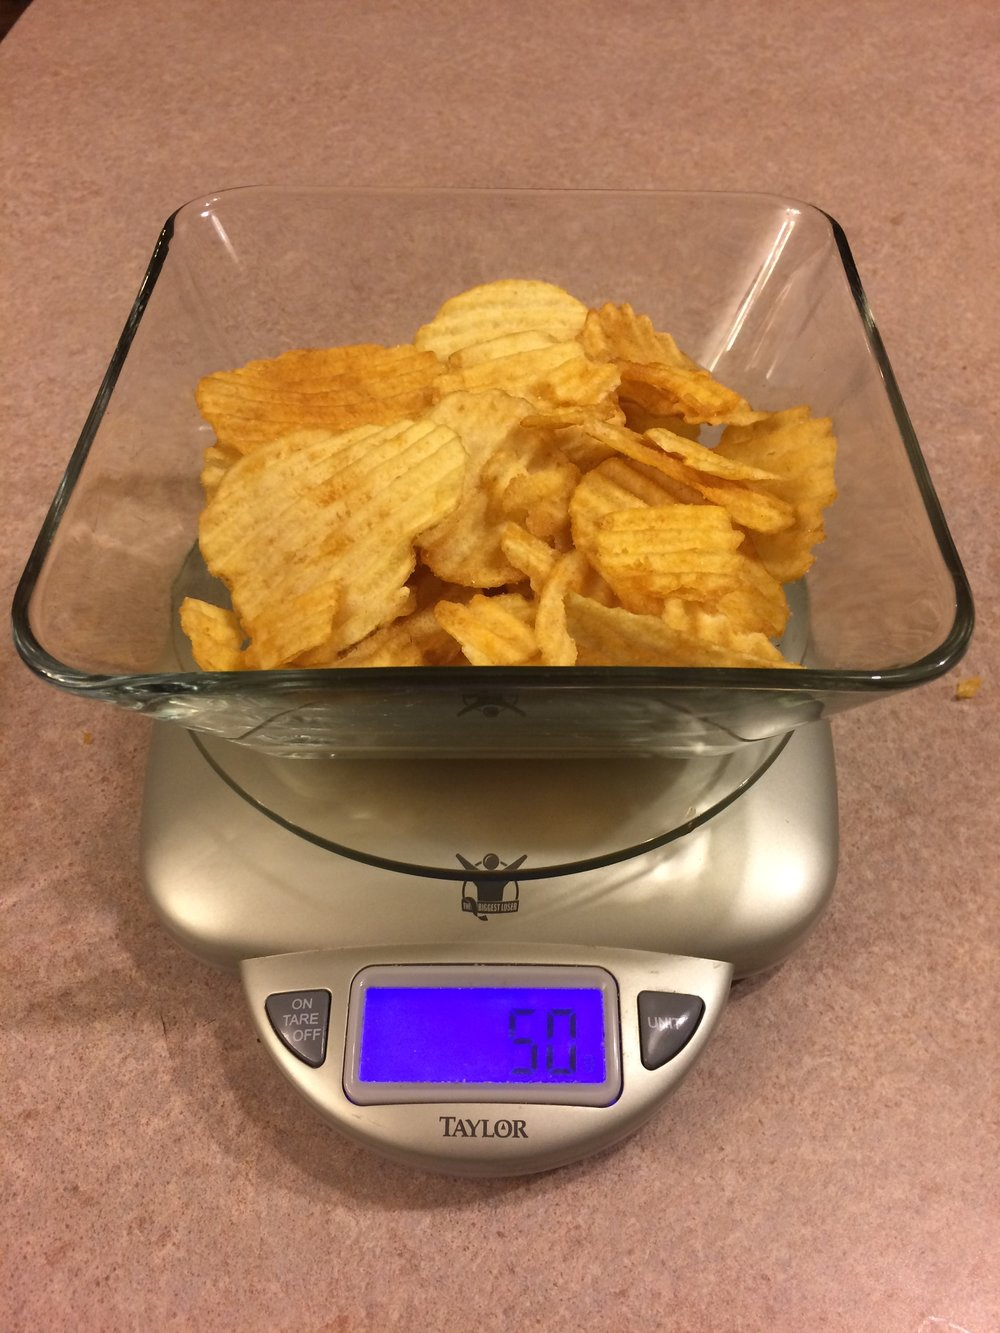 One of my favorite foods - an appropriate portion size of chips -